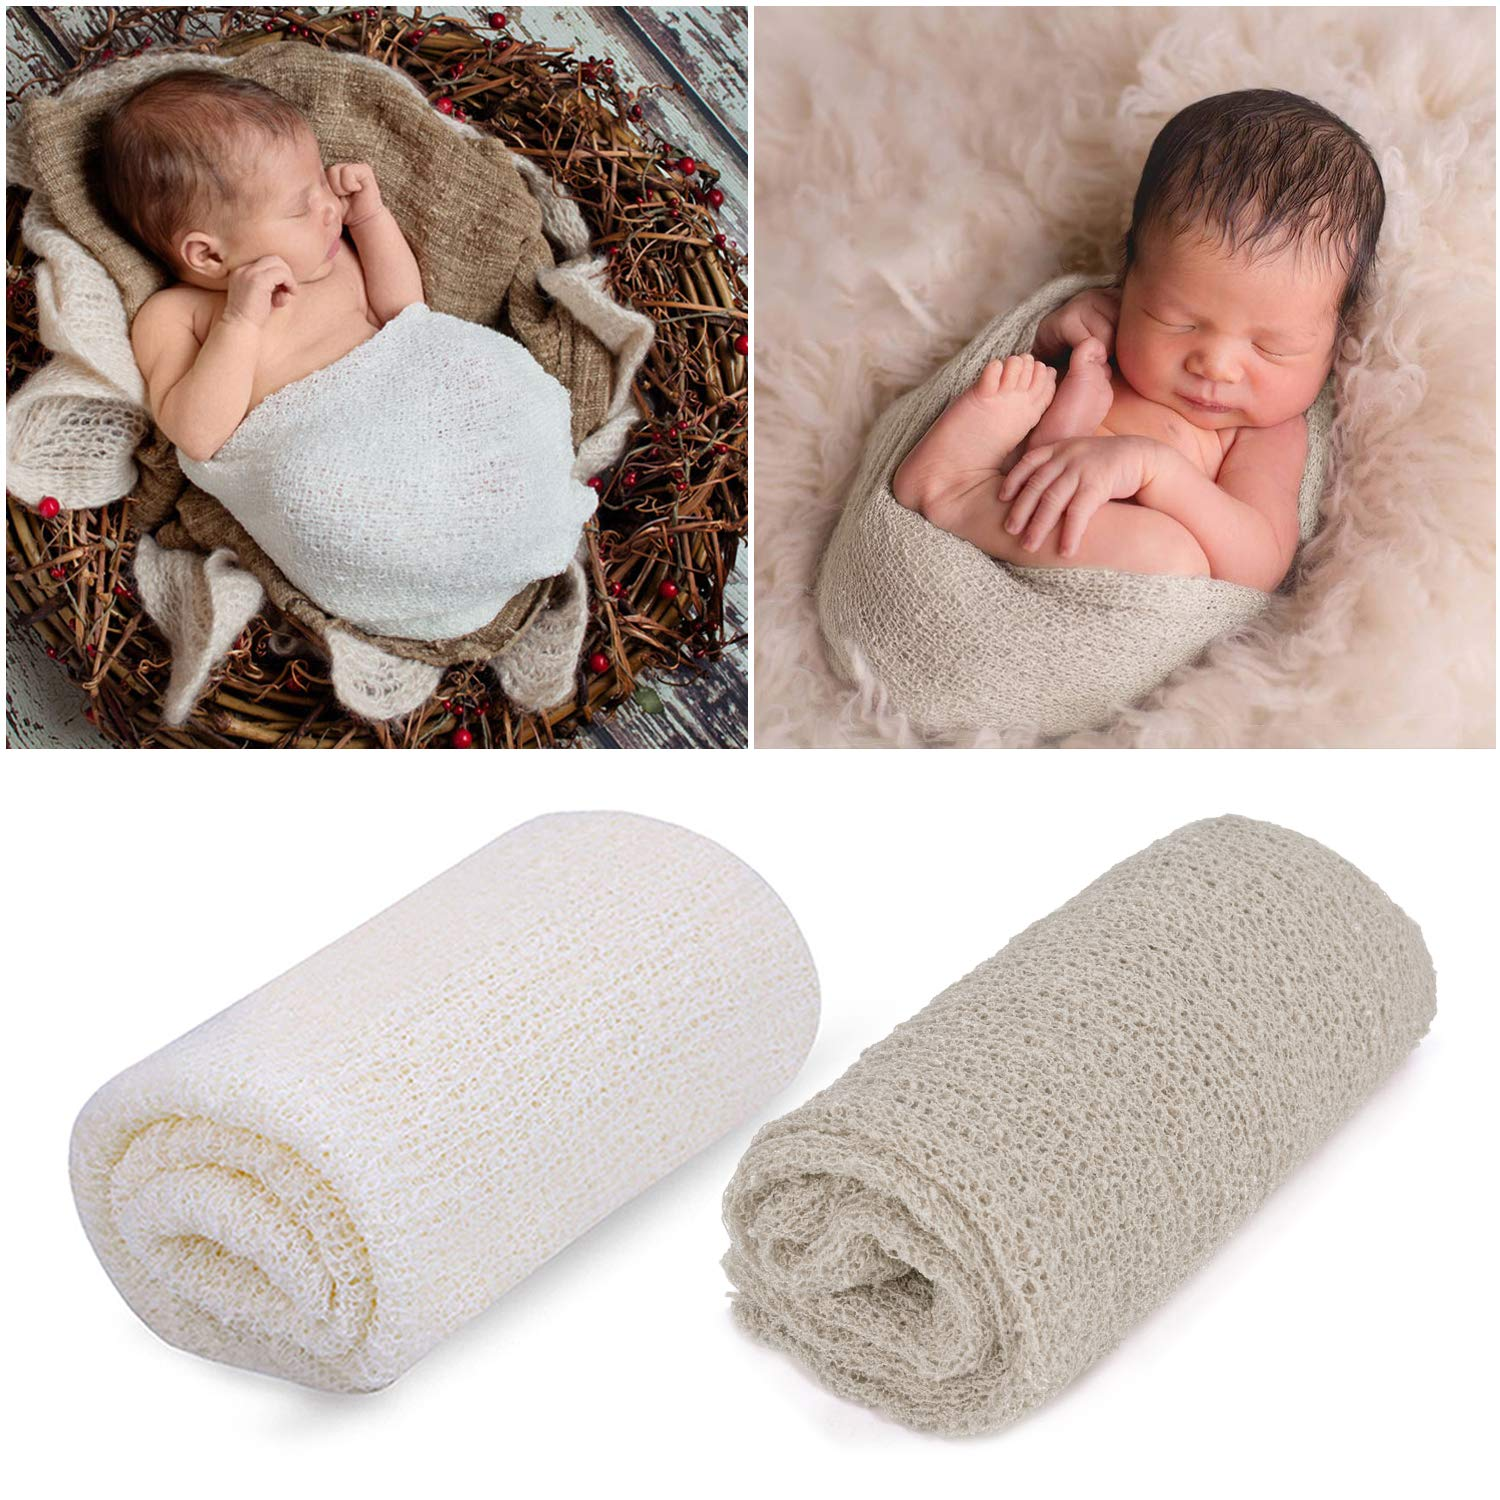 Kapmore 2PCS Baby Swaddle Wrap Elastic Cotton Wraps Photo Prop for Newborn Photography by Kapmore